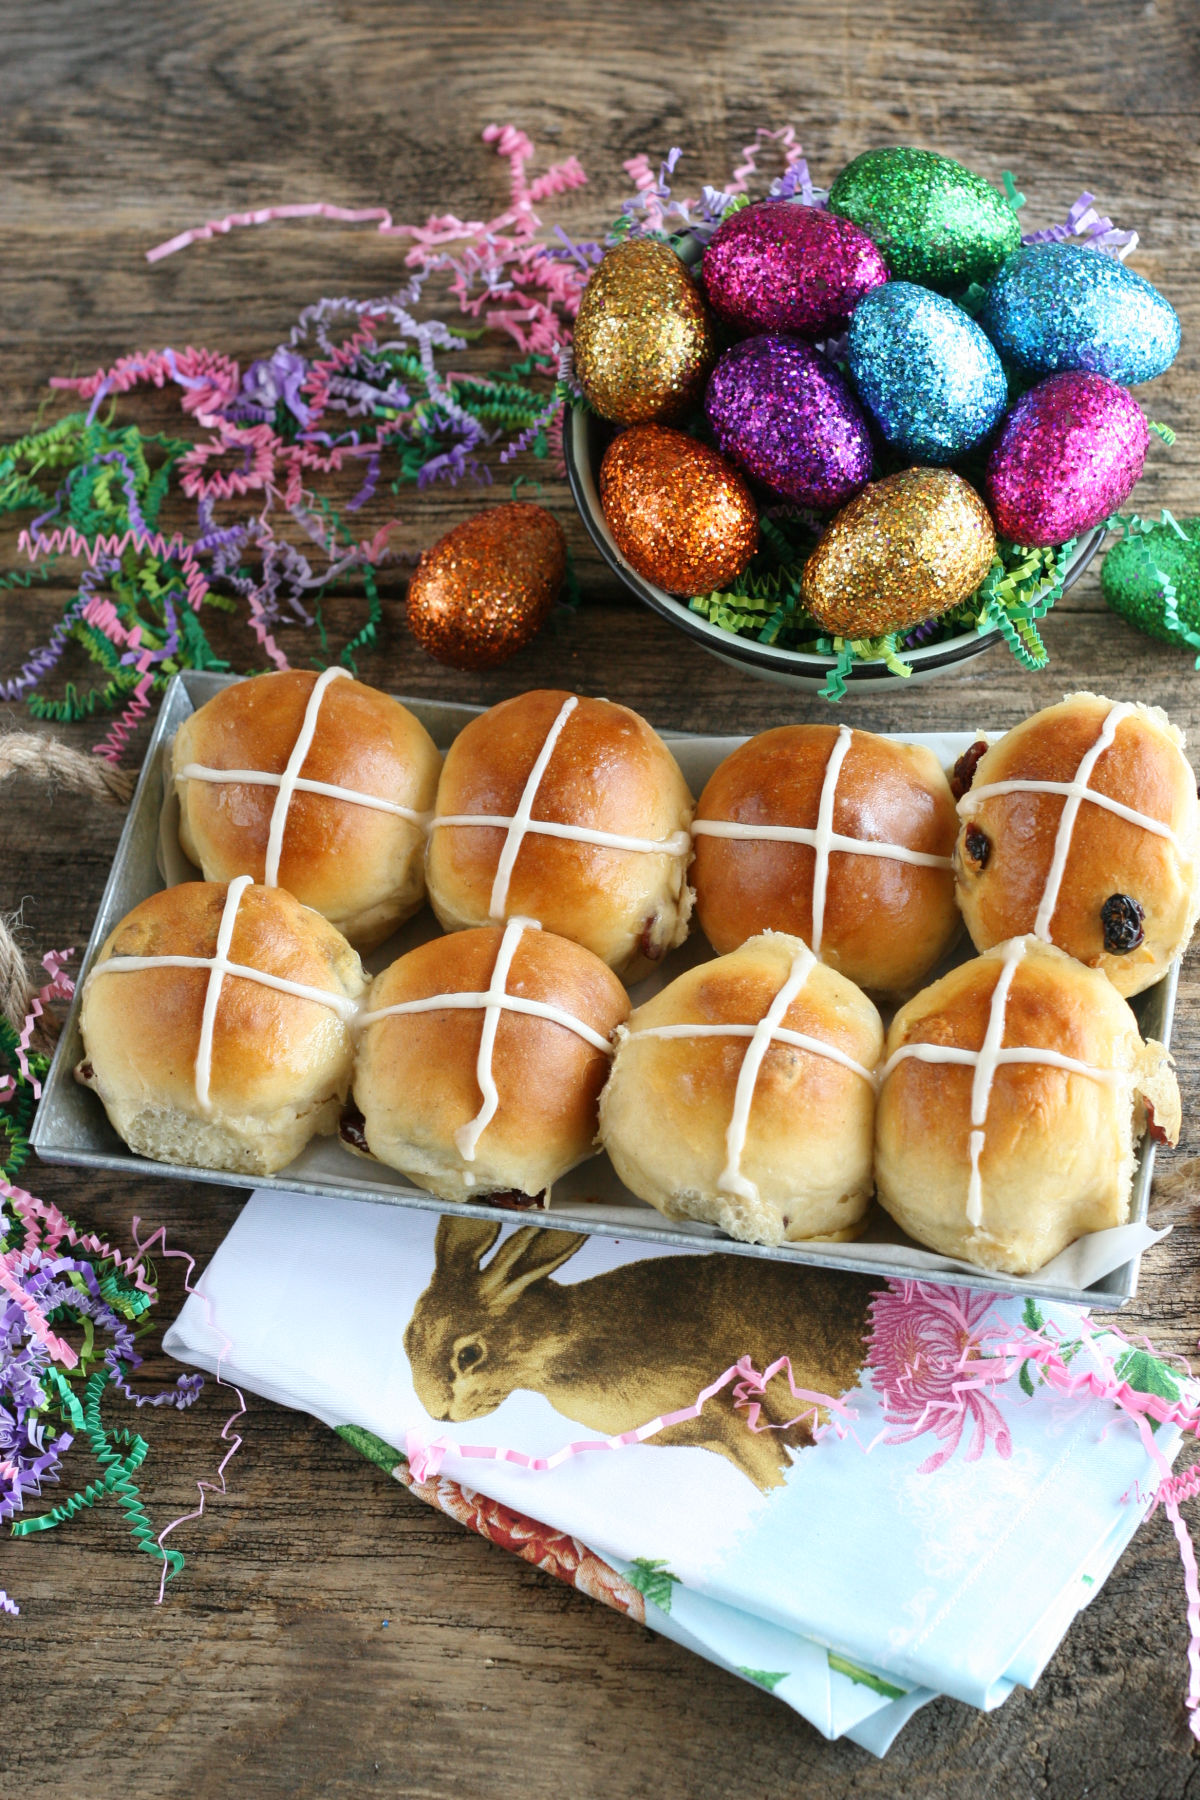 Hot Cross Buns are a tradition yeast style spiced bun made with either raisins, currents, or another dried fruit. They are perfect for your Easter celebration.